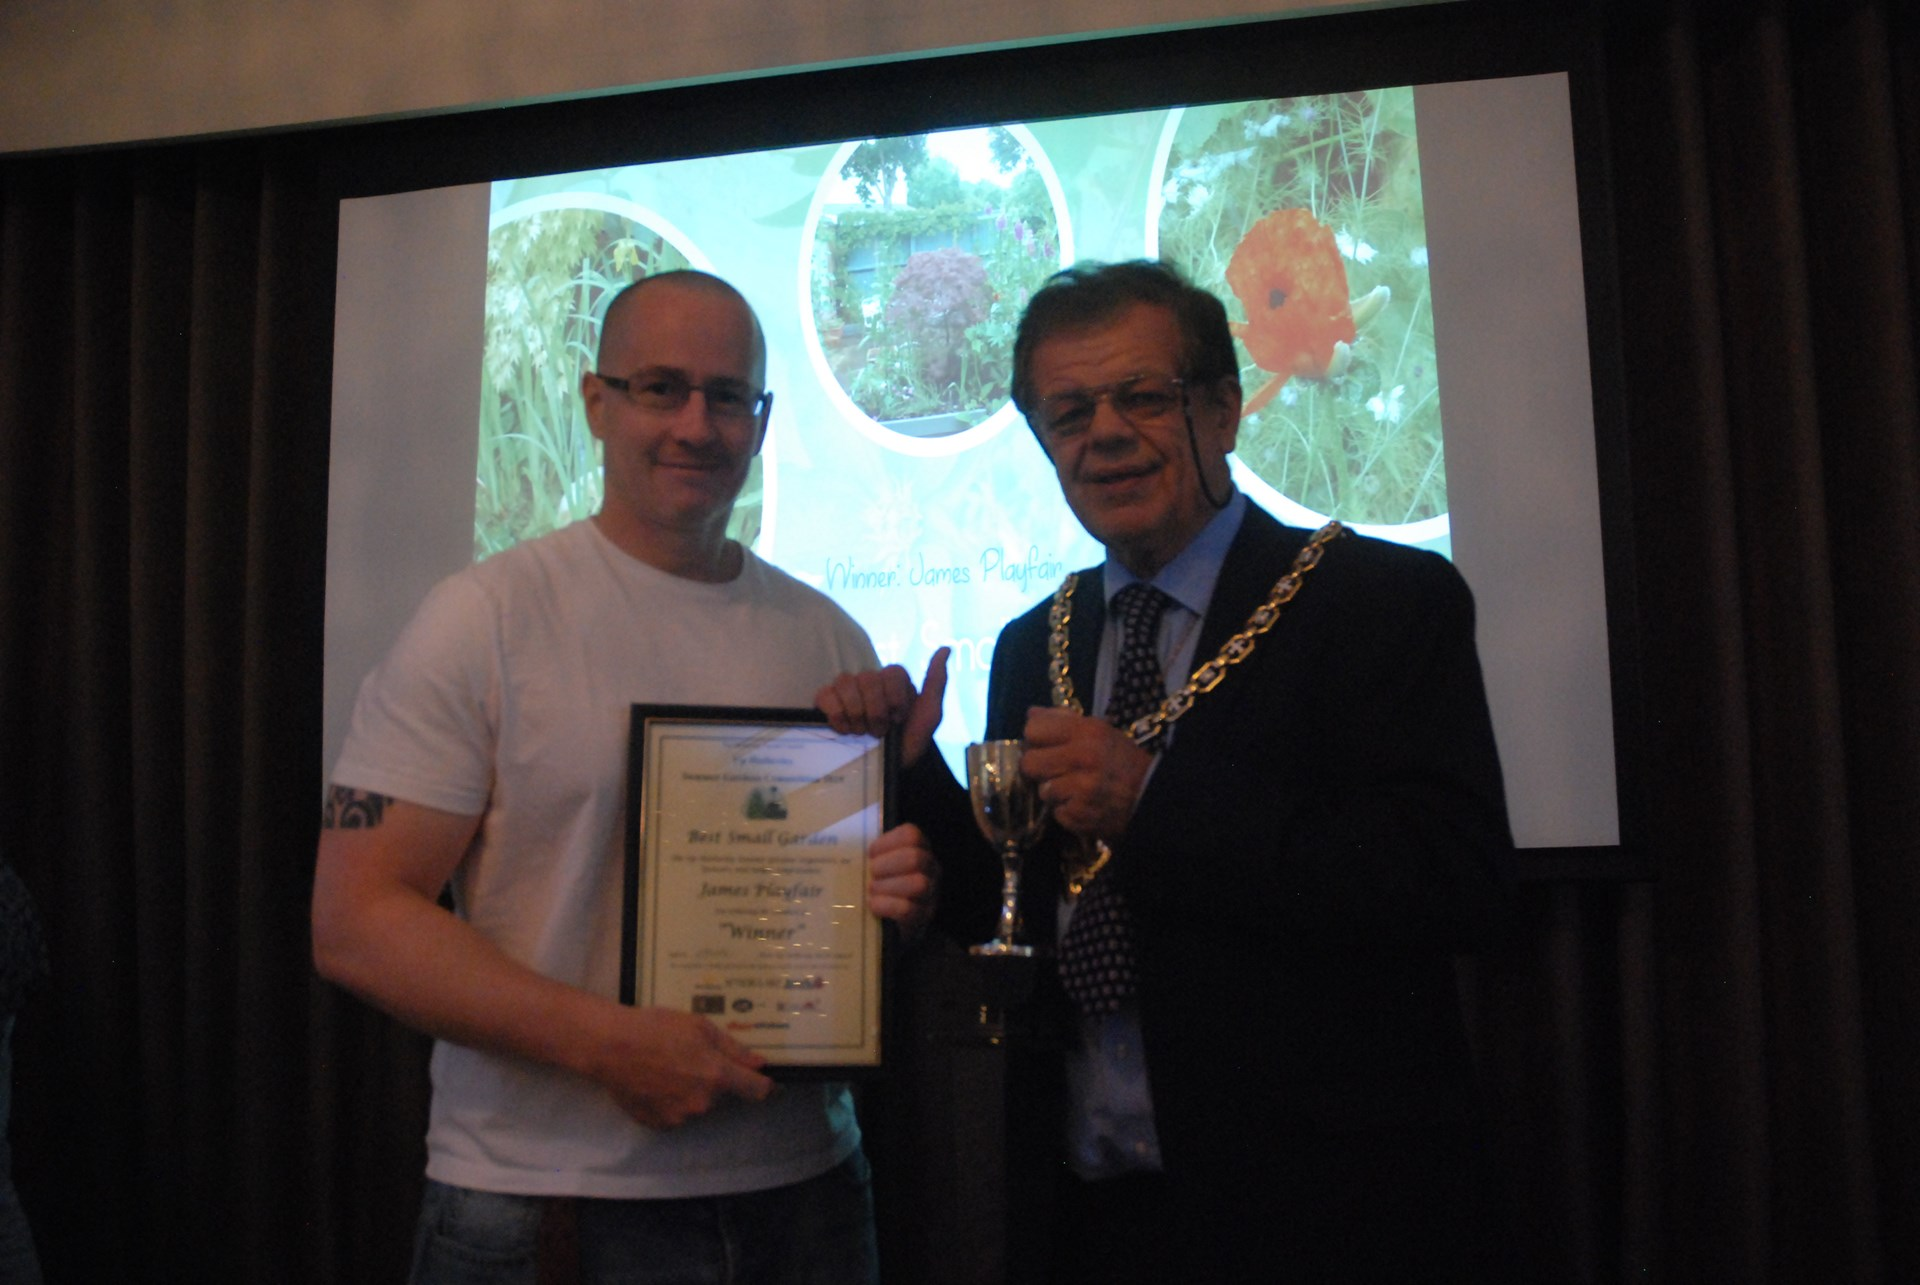 Best Small Garden - James Playfair